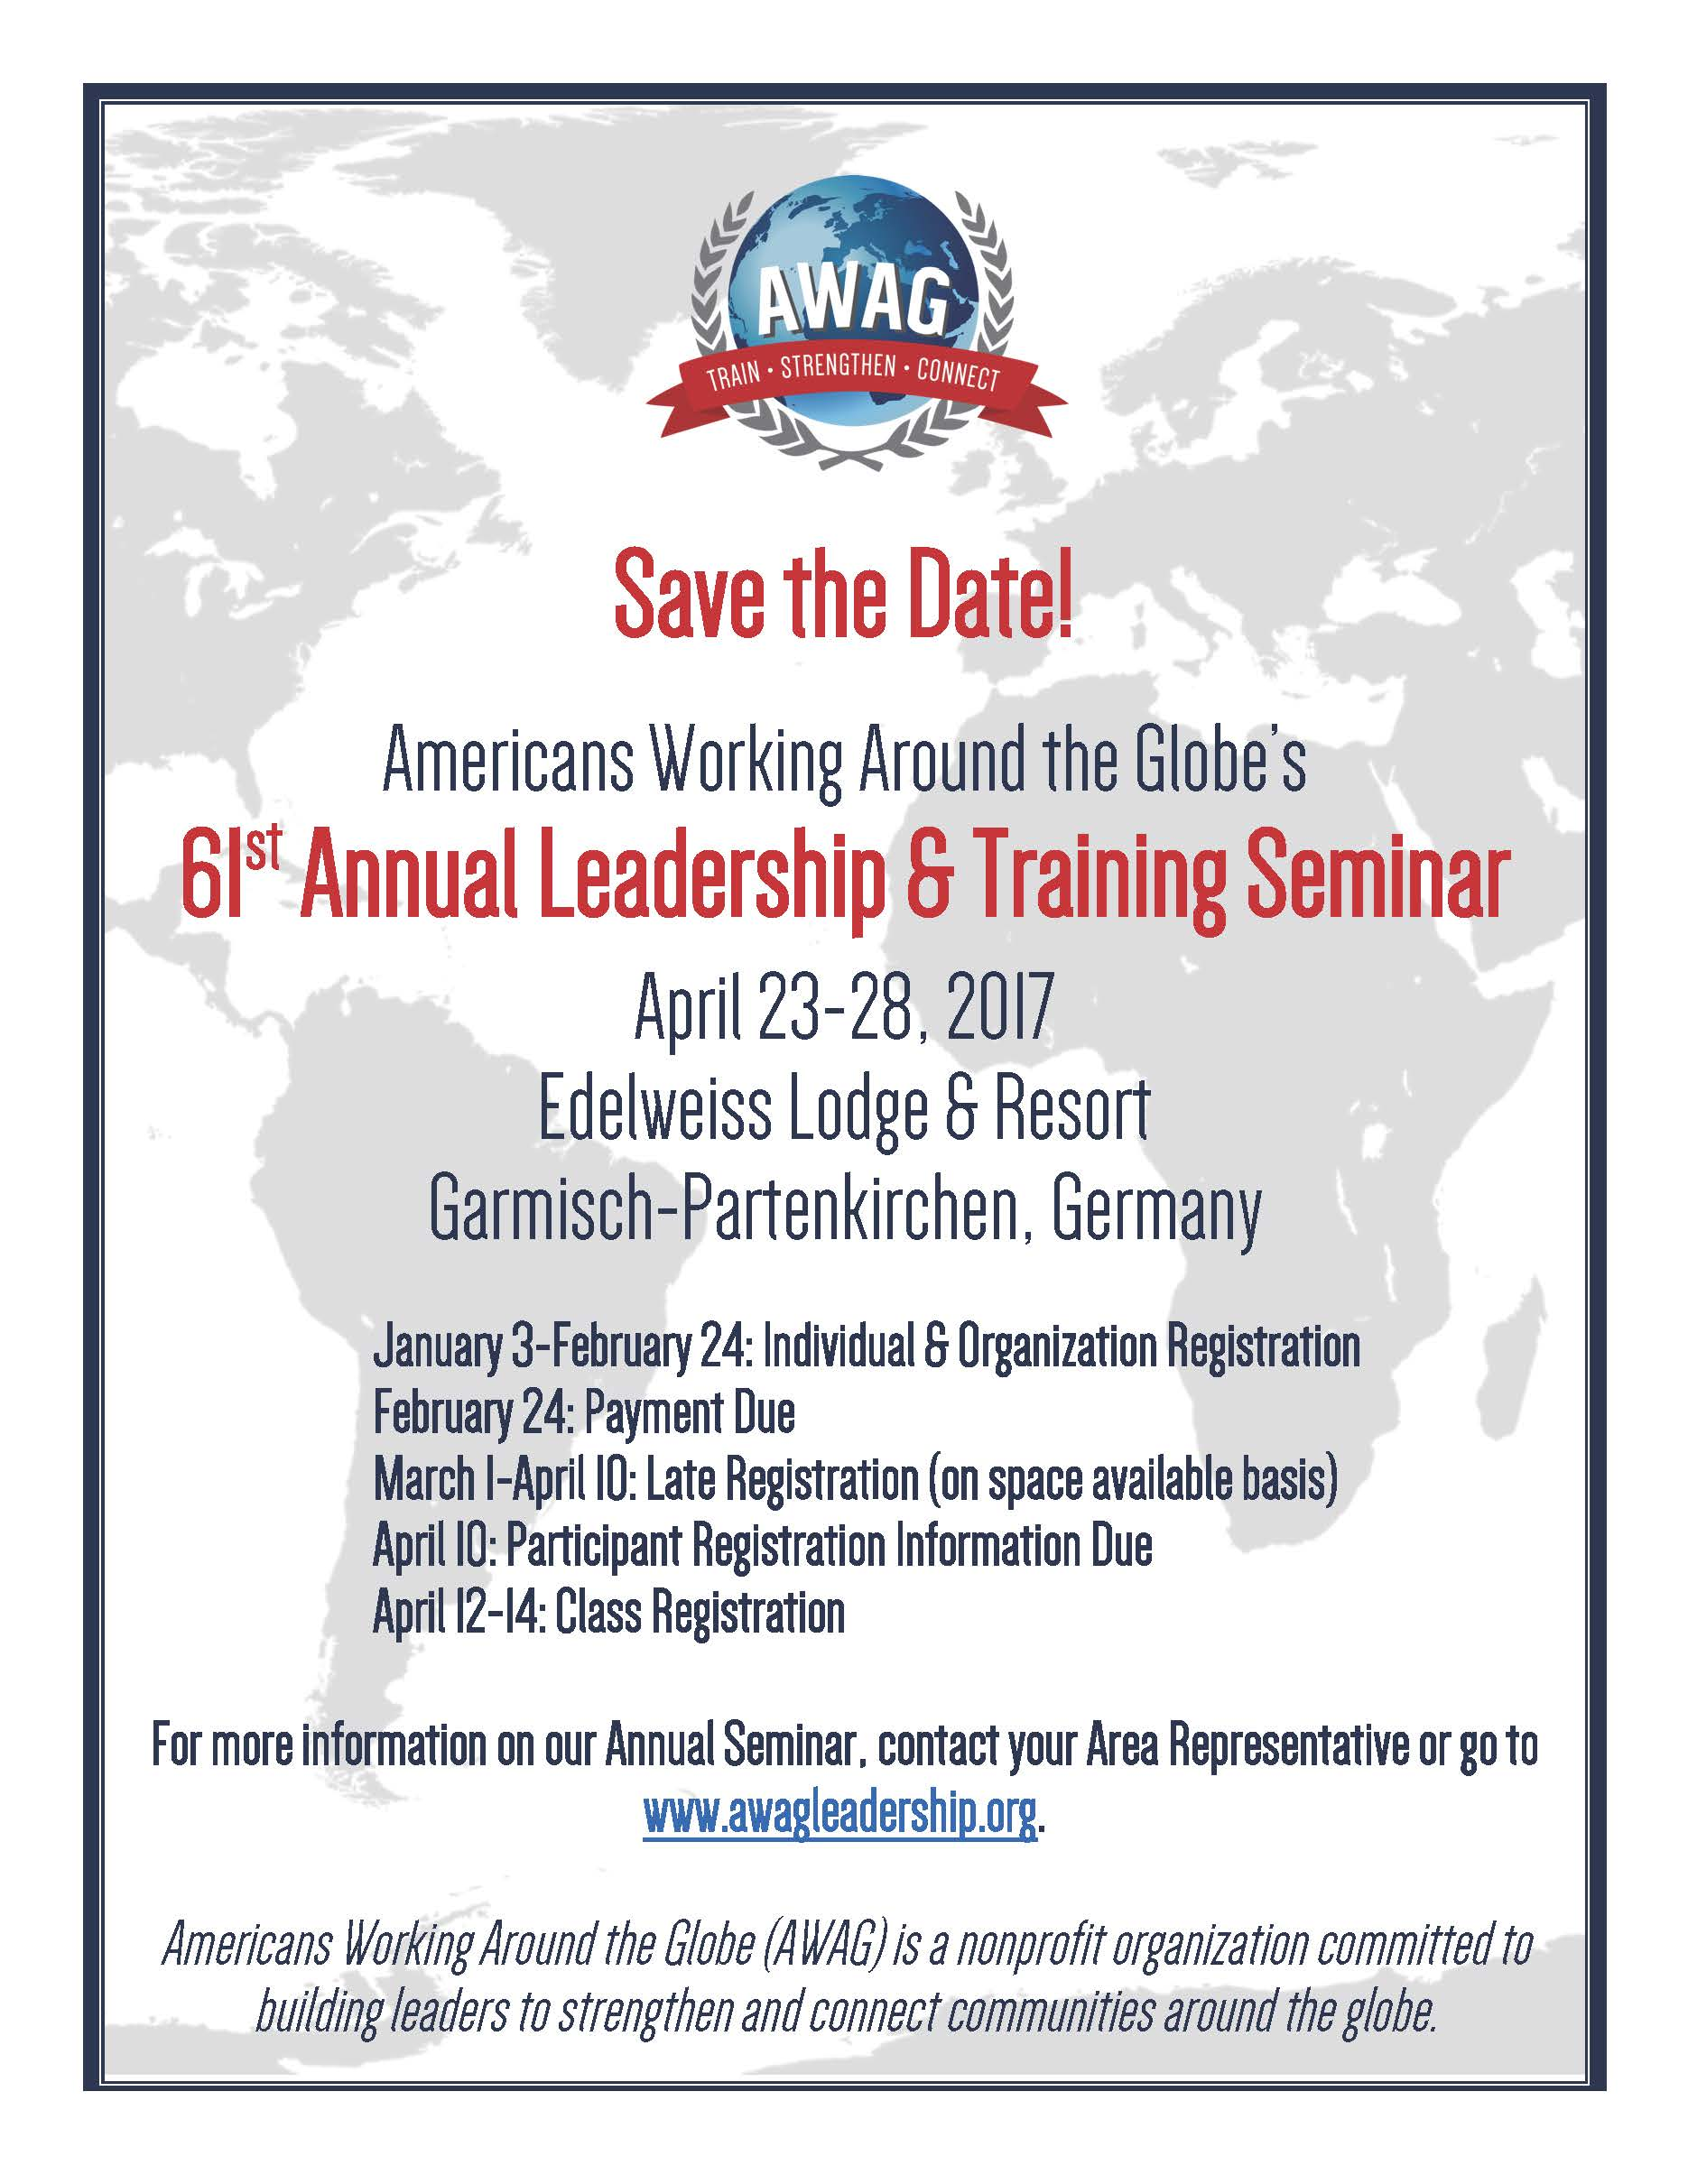 AWAG Leadership Training Seminar registration open